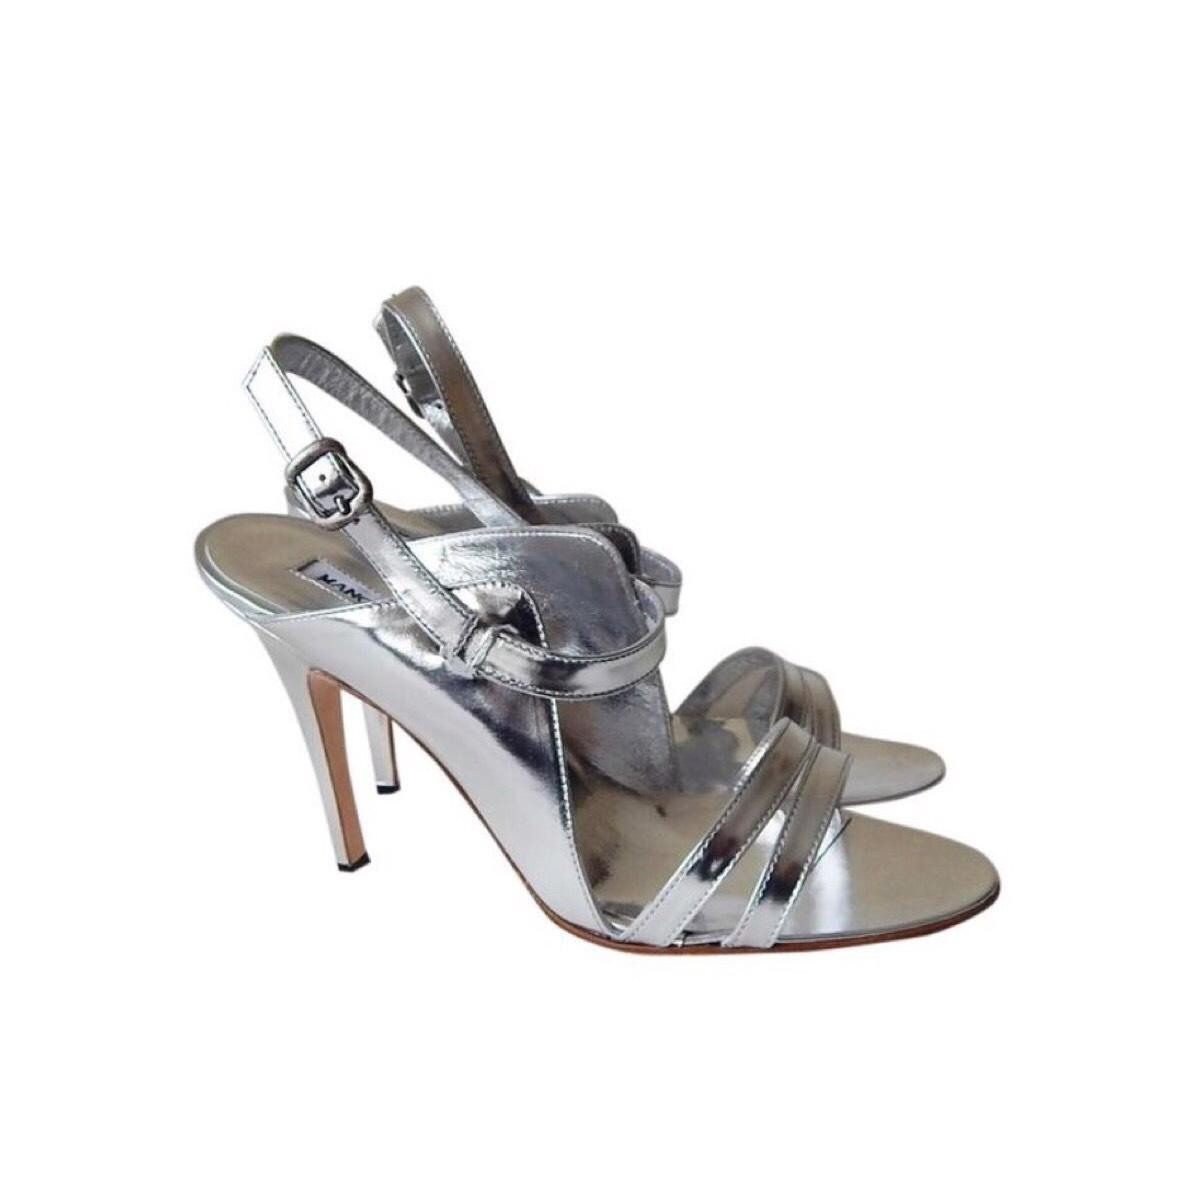 Manolo Blahnik Dodo Patent Leather Sandals cheap lowest price cheap sale best place websites cheap sale pay with visa buy cheap pay with paypal I6GyIKB